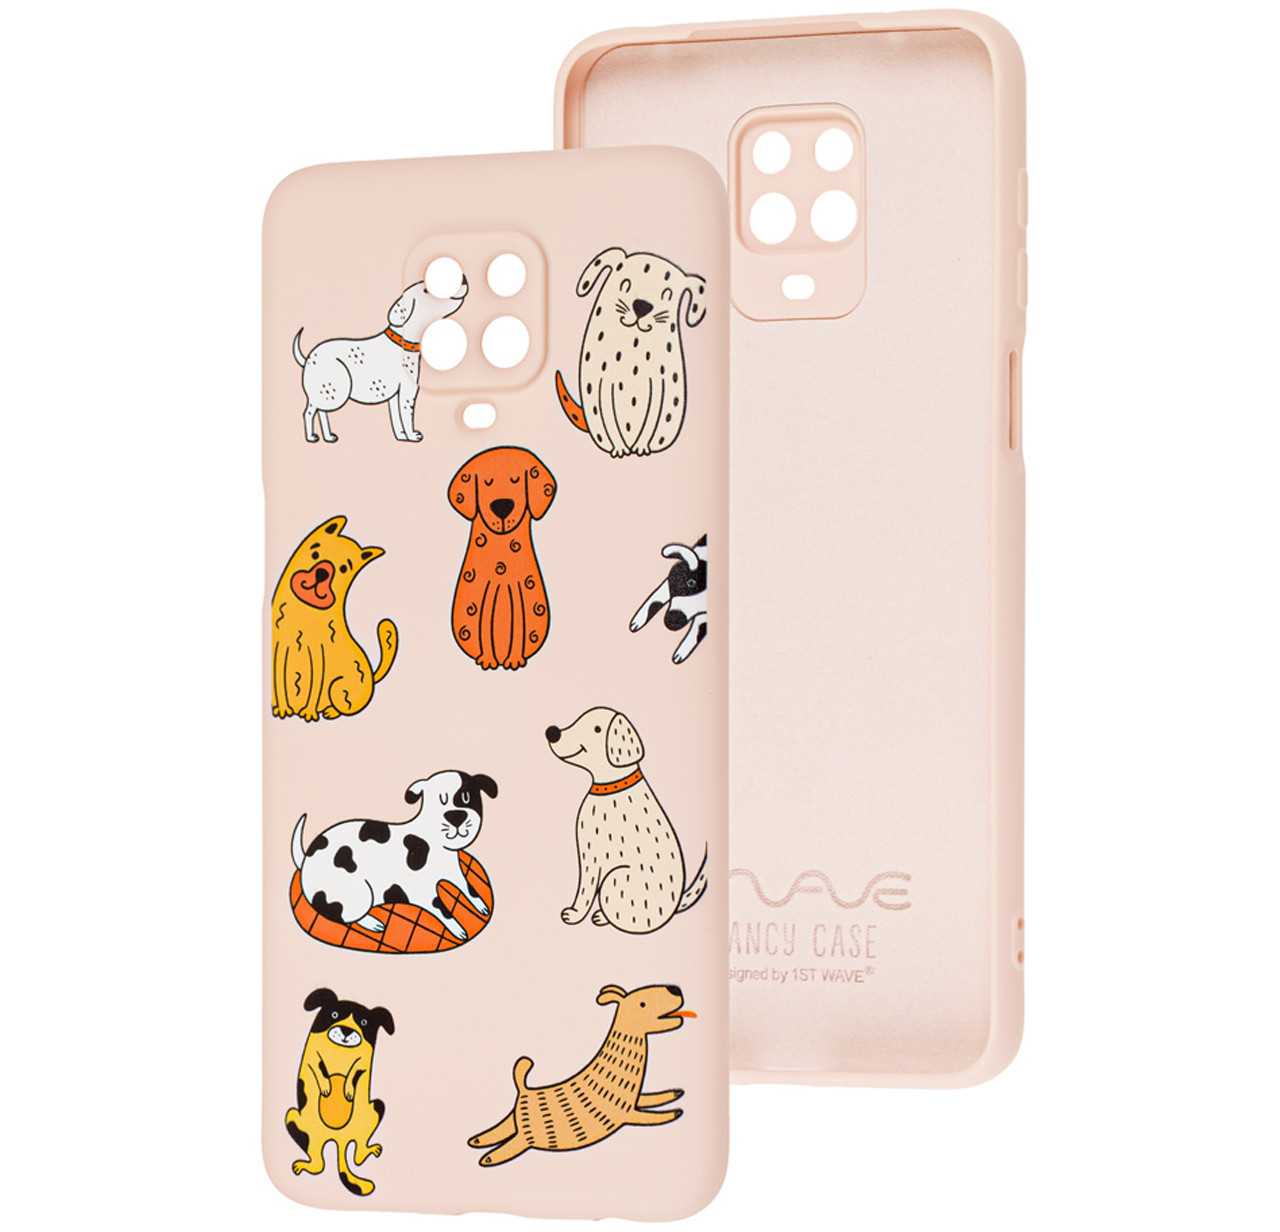 Чехол-накладка TPU WAVE Fancy Case для Xiaomi Redmi Note 9s /Note 9 Pro /Note 9 Pro Max Pink Sand (Funny Dogs)